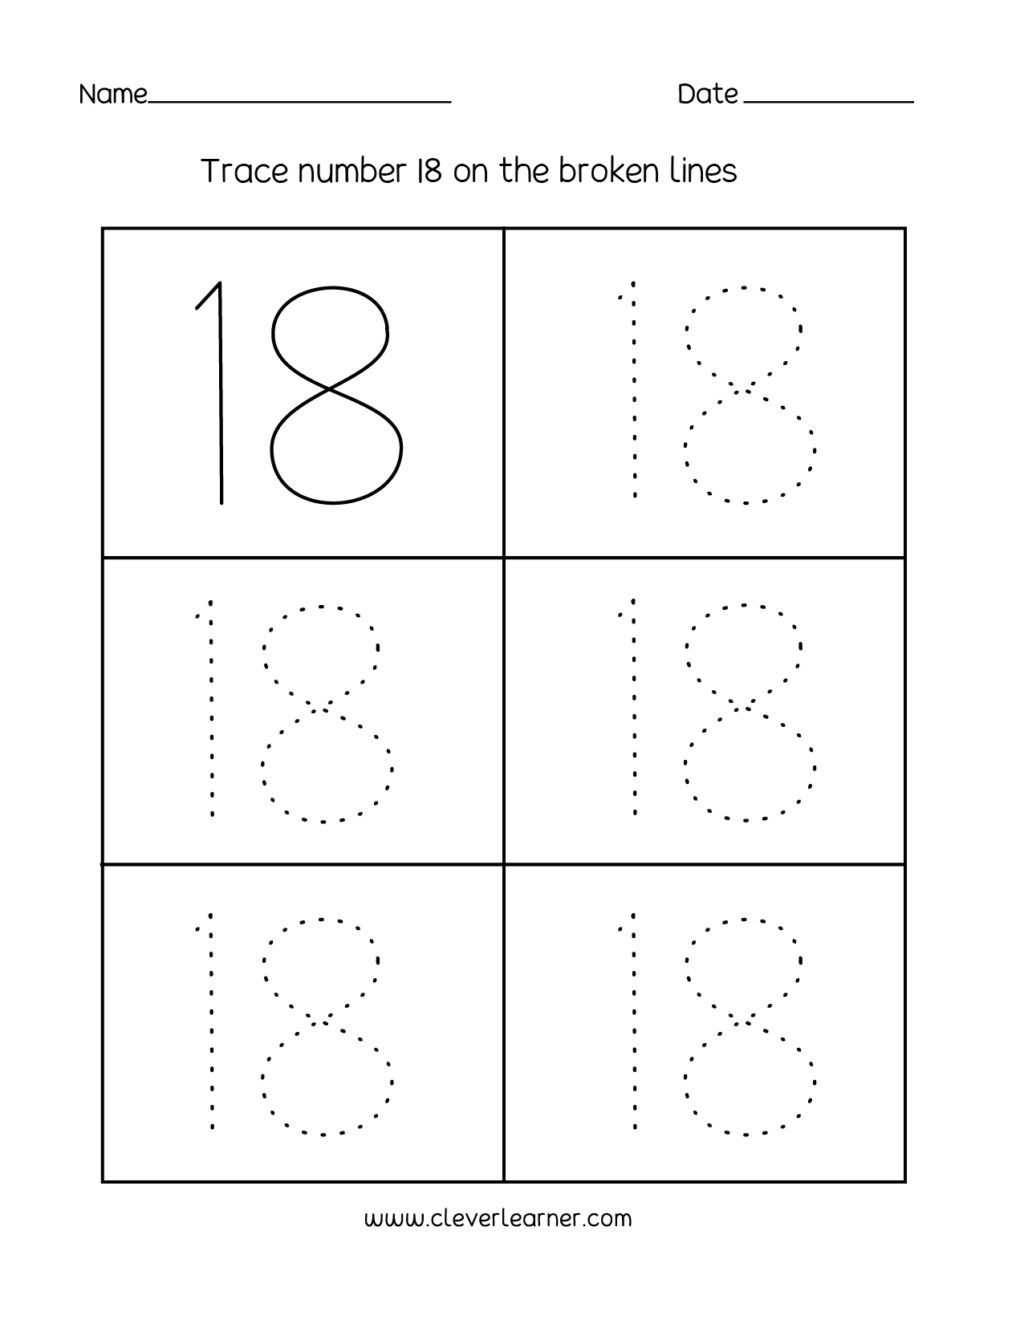 Preschool Number Tracing Worksheet Number Writing Counting and Identification